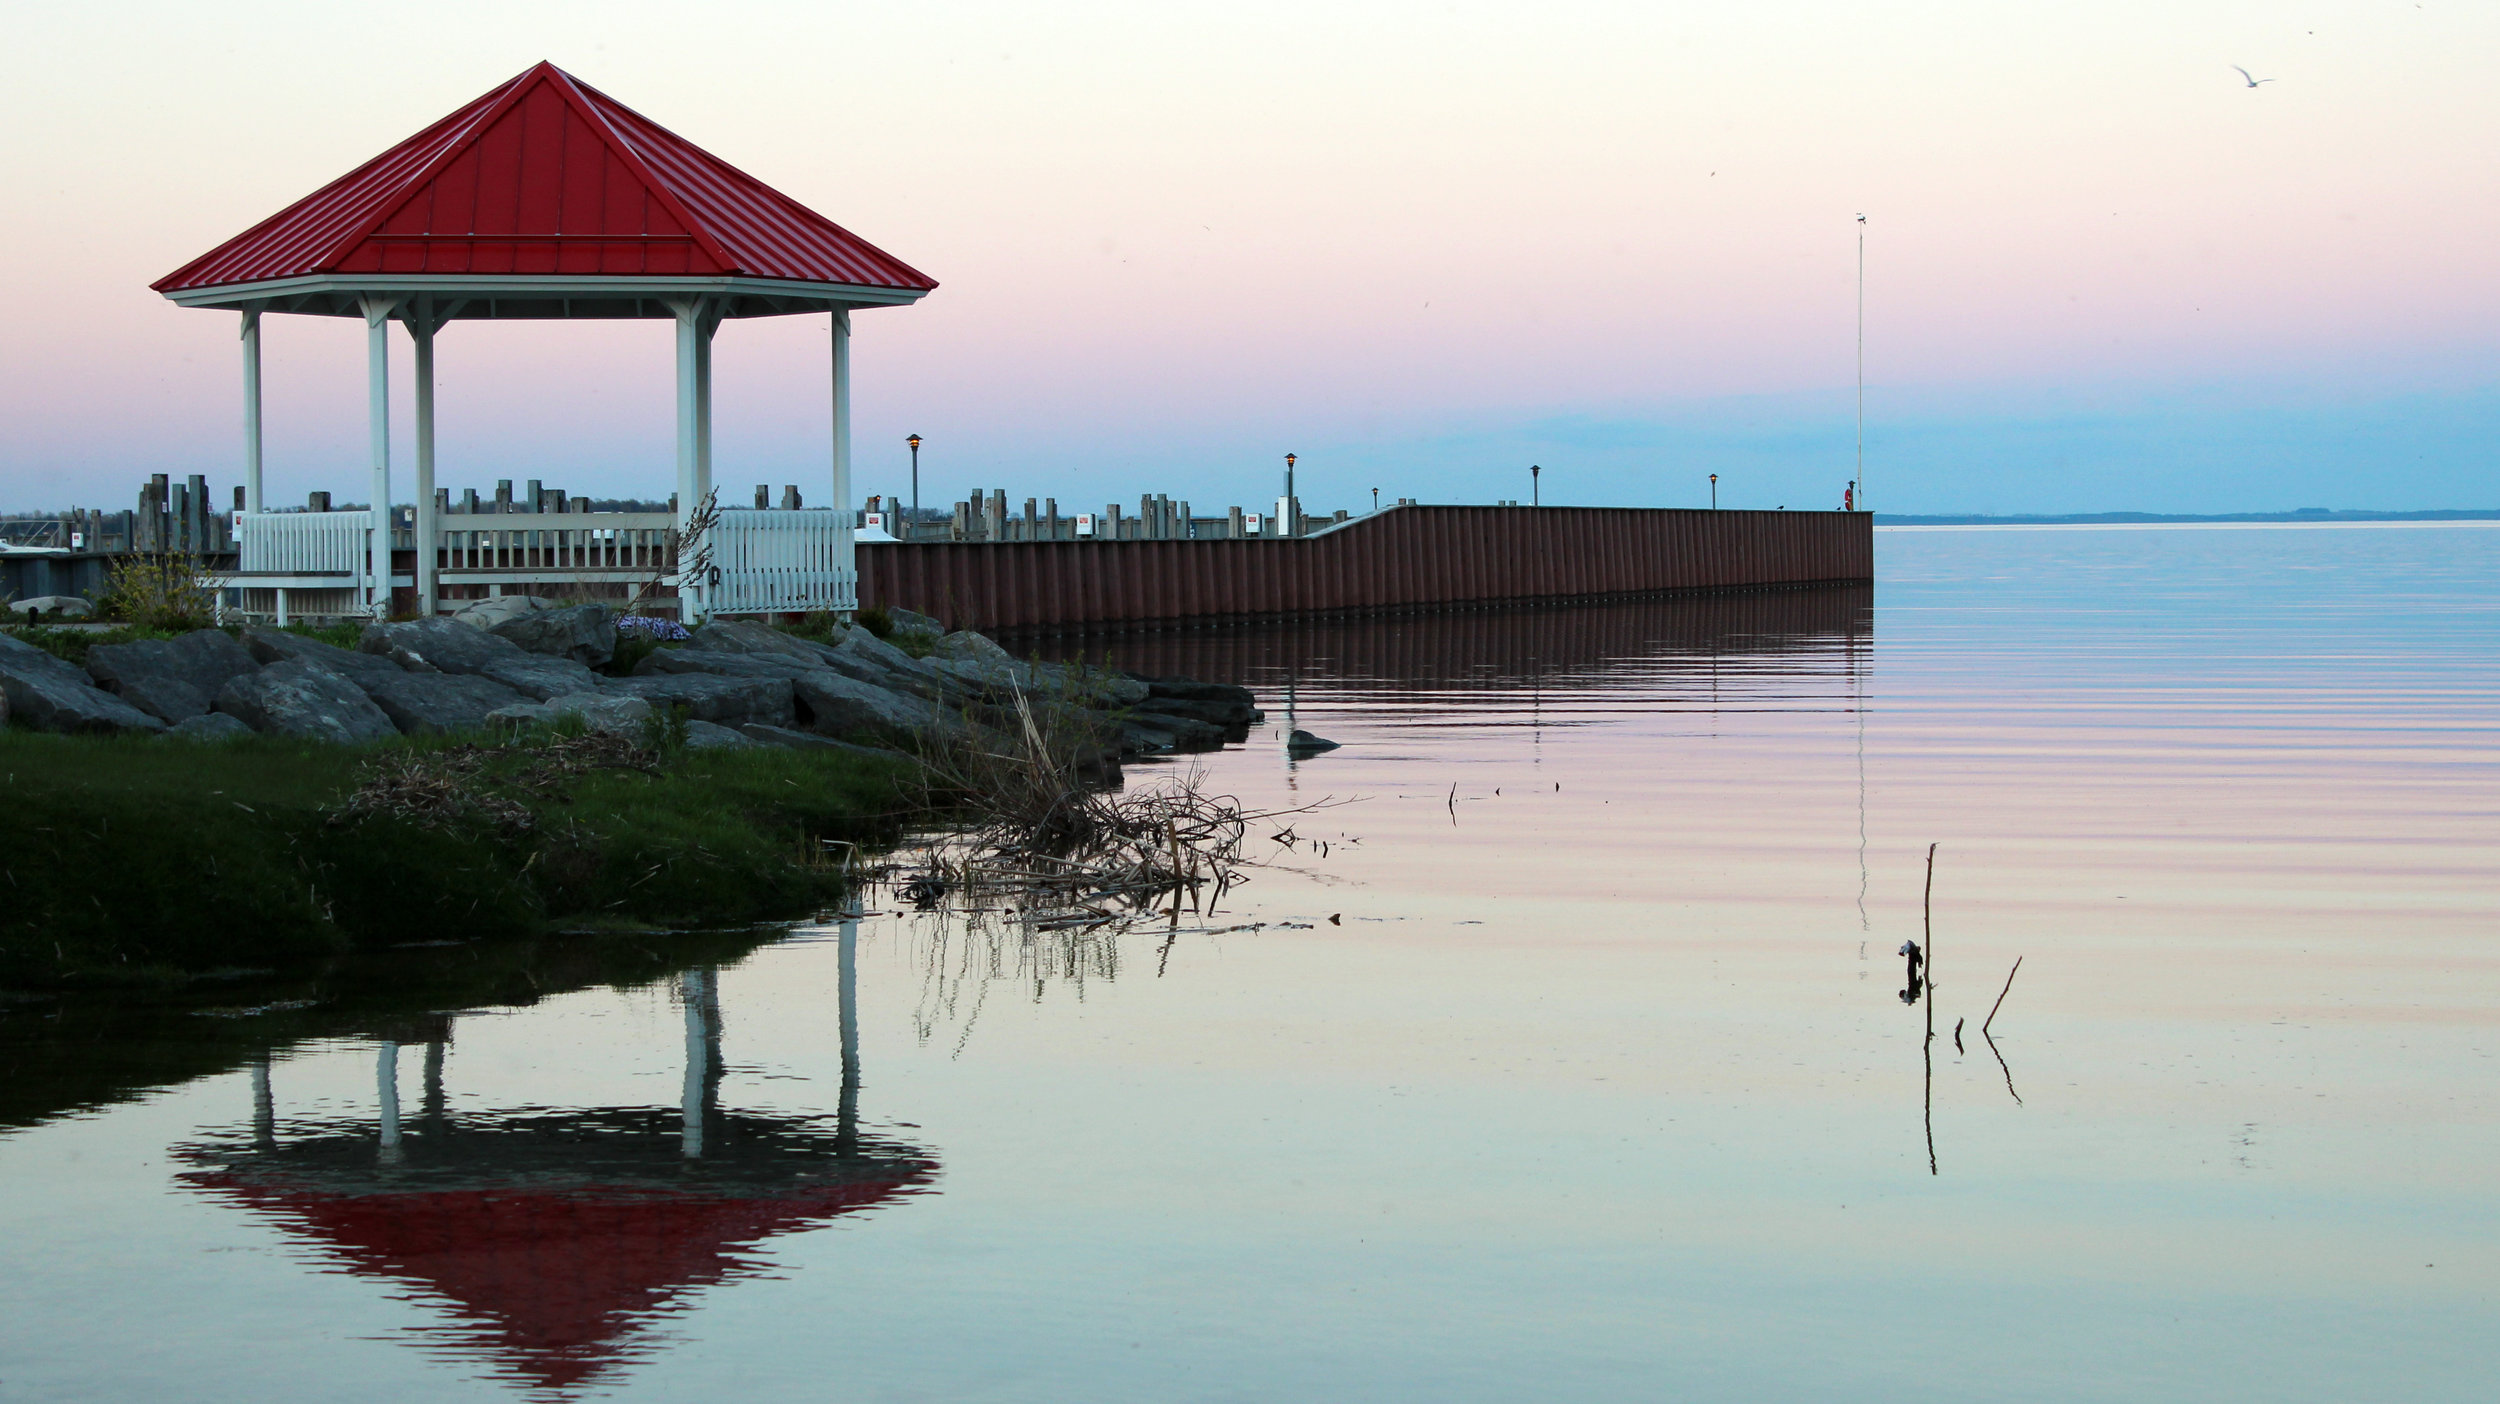 Northport, Michigan: Northport's red and white gazebo casts its reflection on the glassy still waters of Grand Traverse Bay. This is one of the most beautiful locations in all Leelanau County. Sometimes, mermaids can be spotted swimming here.